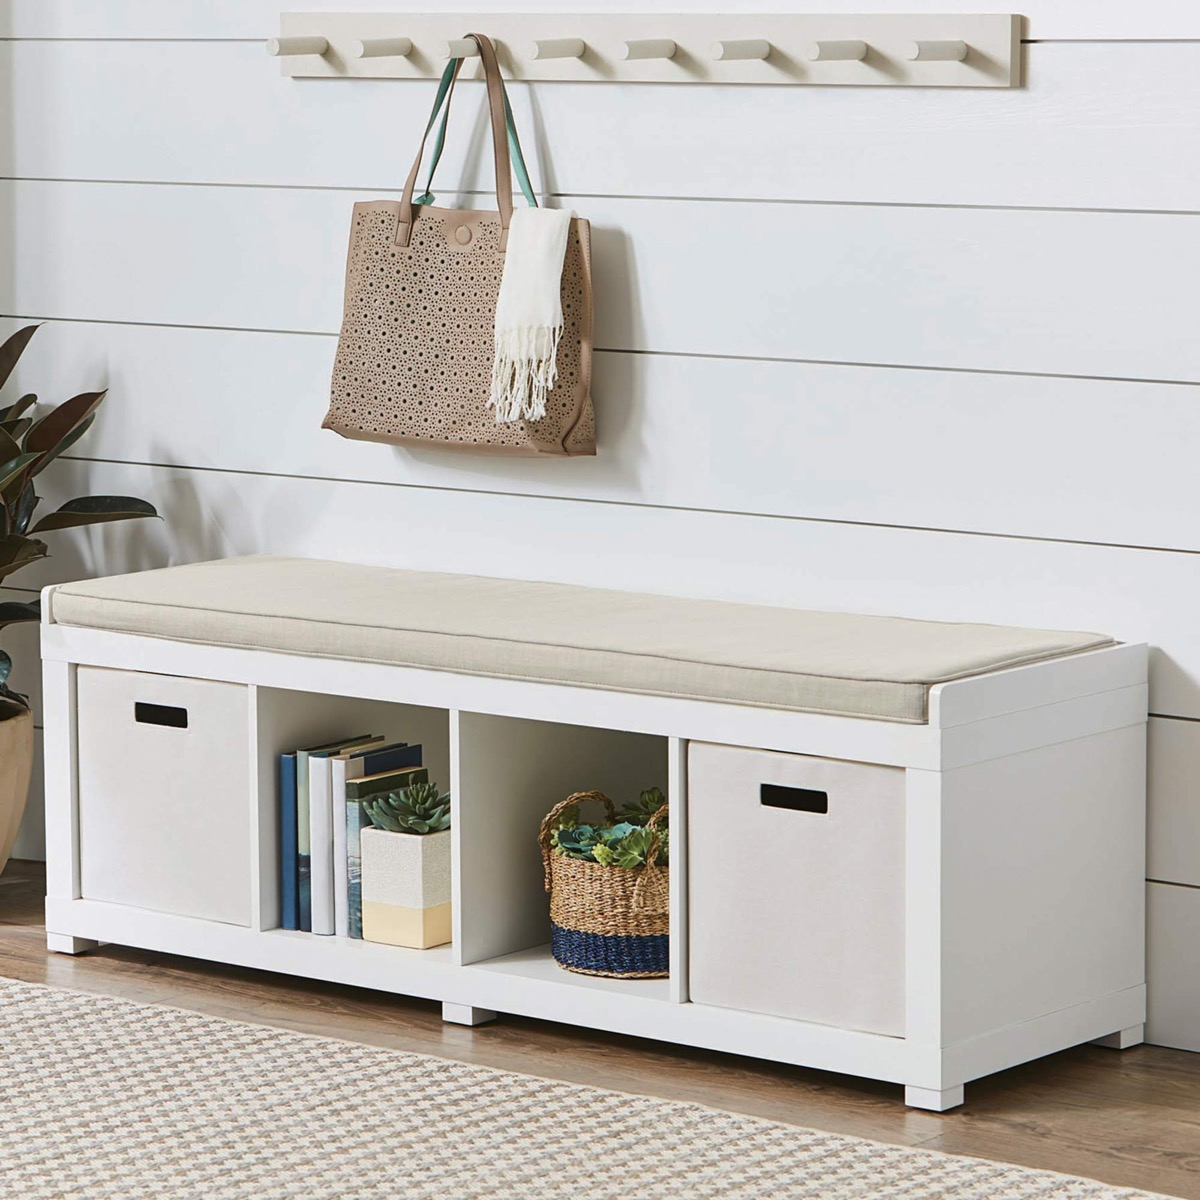 white-storage-bench-with-cushions-and-front-cubbies